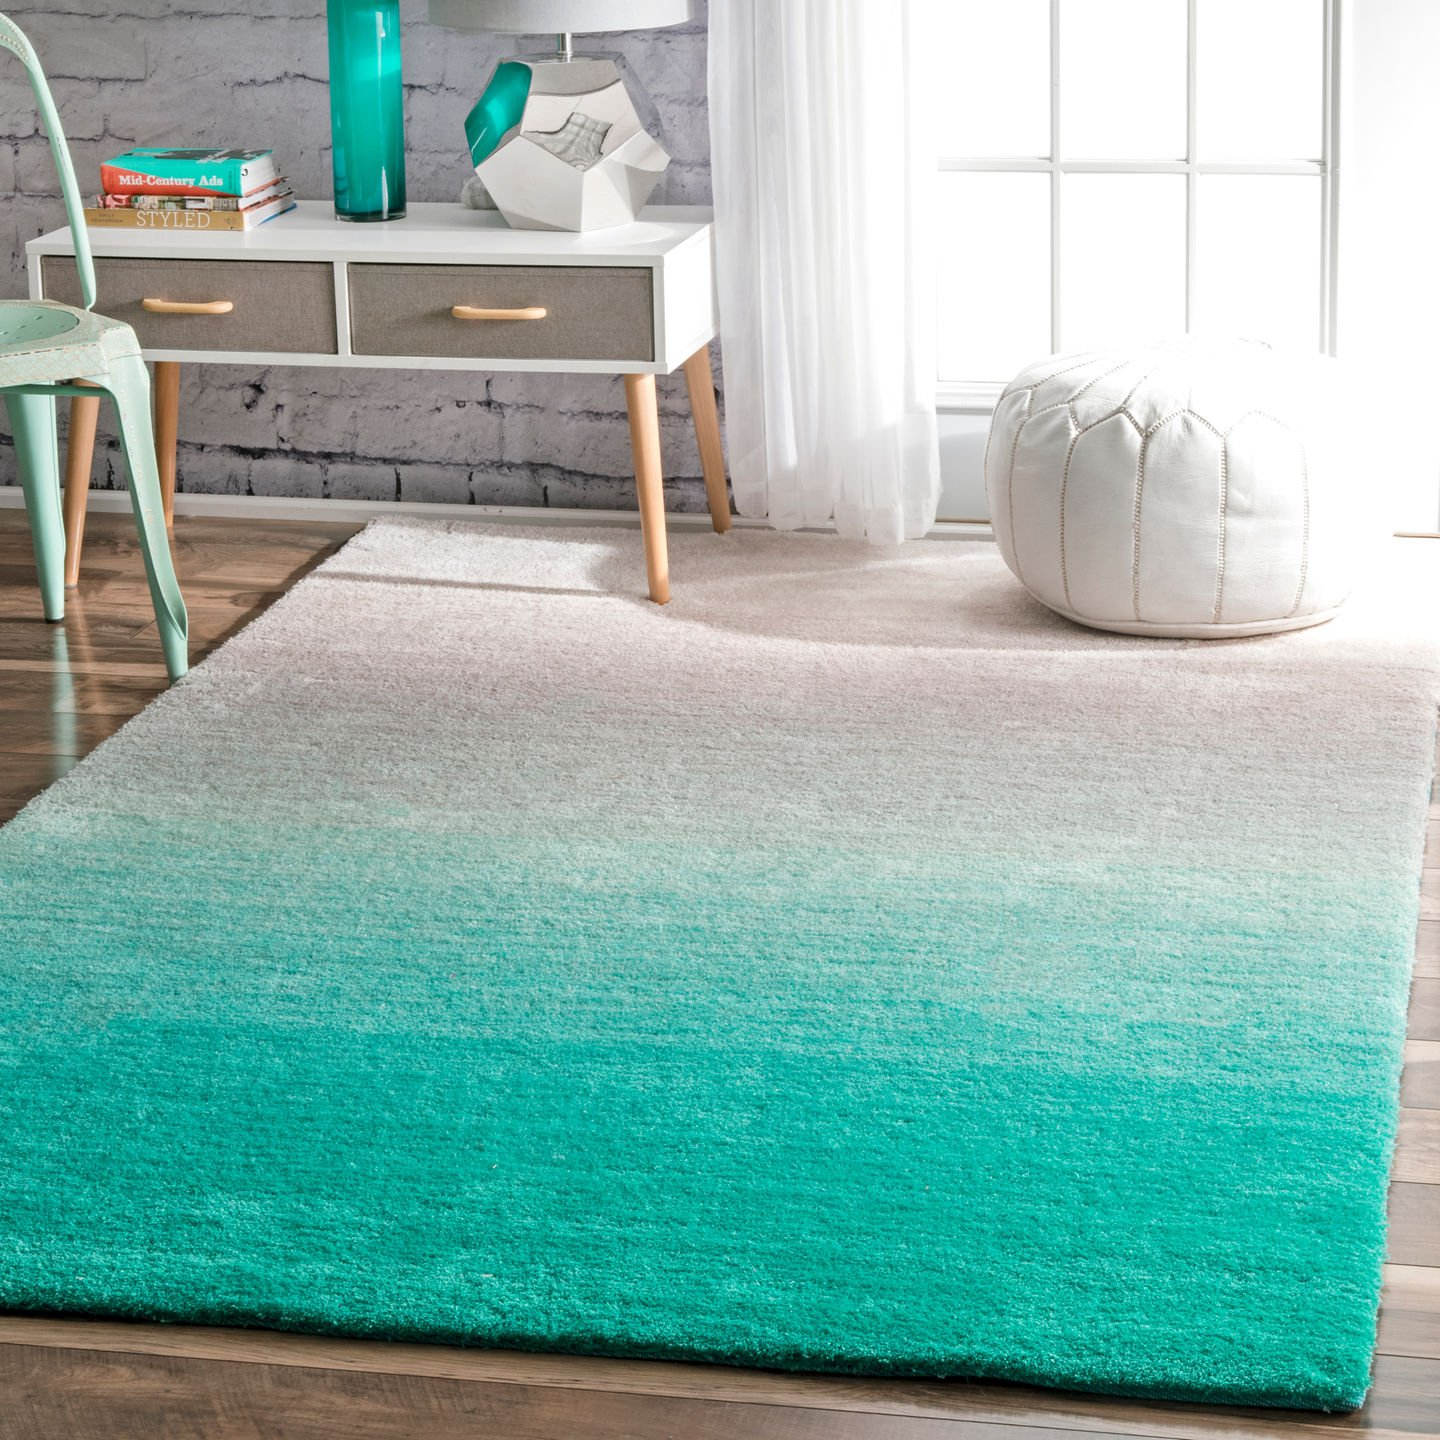 nuLOOM Ariel Ombre Shag Rug, 4 x 6 , Turquoise